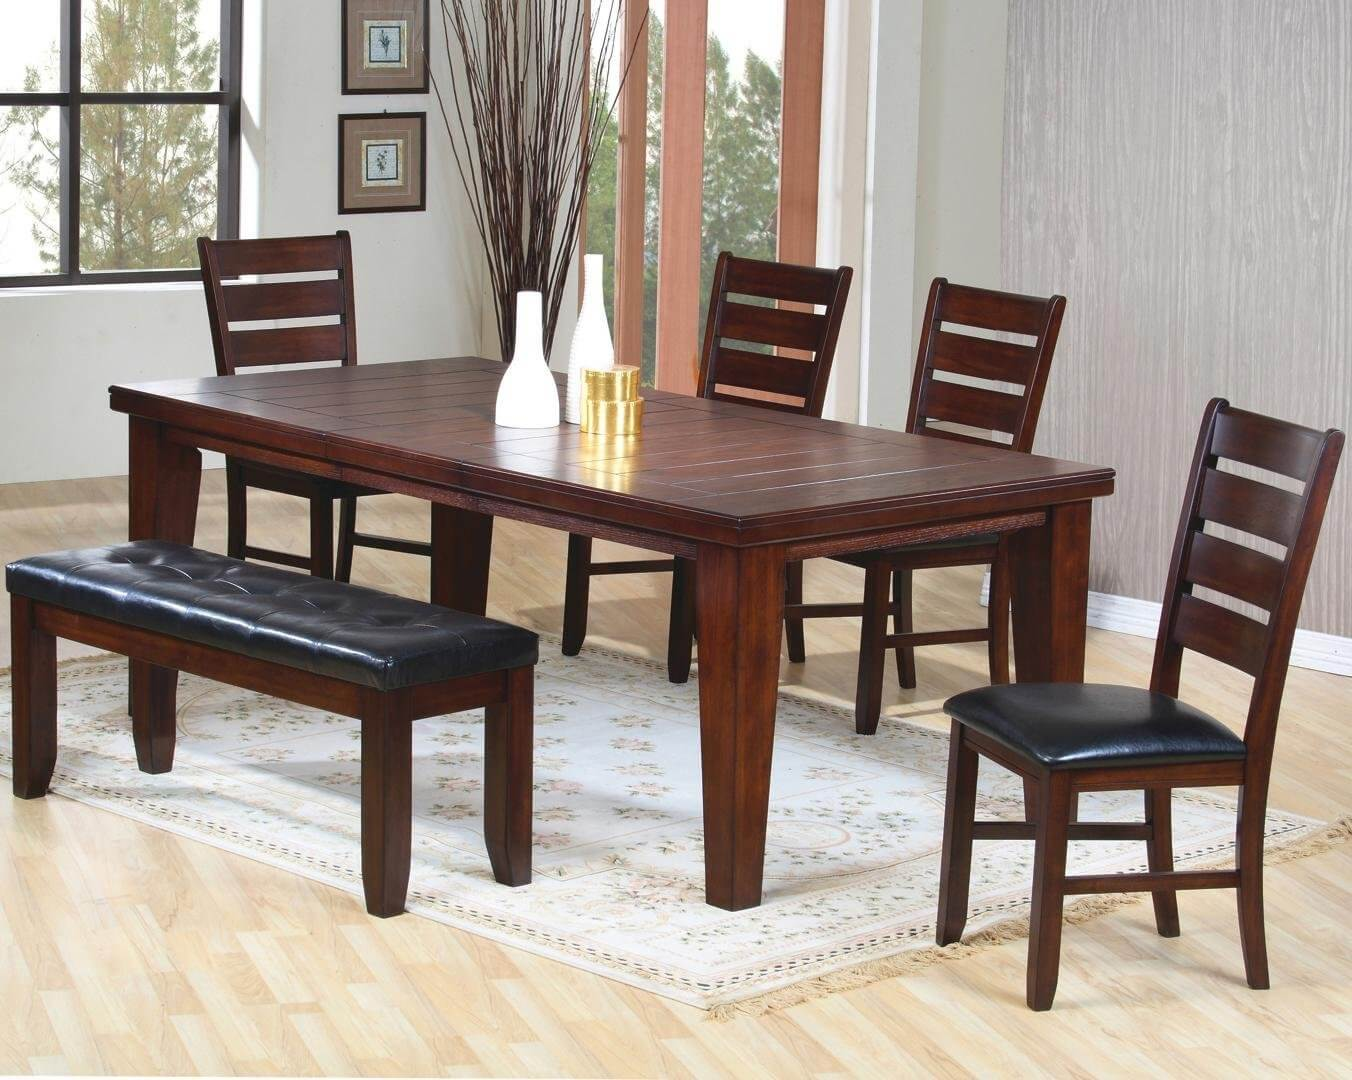 Solid Wood Six Piece Dining Set With Cushioned Bench The Finish Is Dark Oak